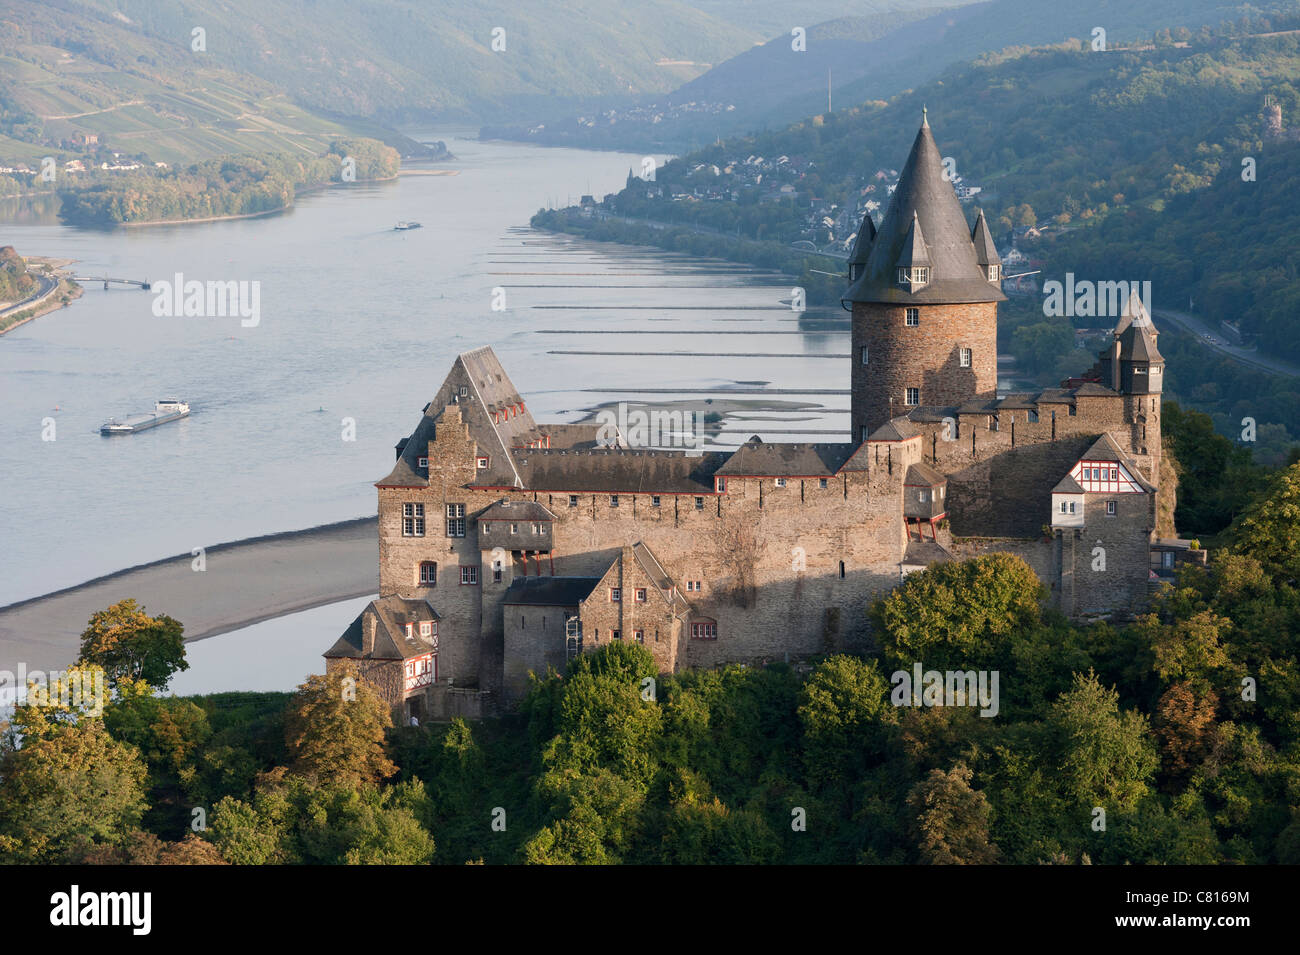 View of Burg castle Stahleck in Bacharach village on Romantic River Rhine in Germany - Stock Image